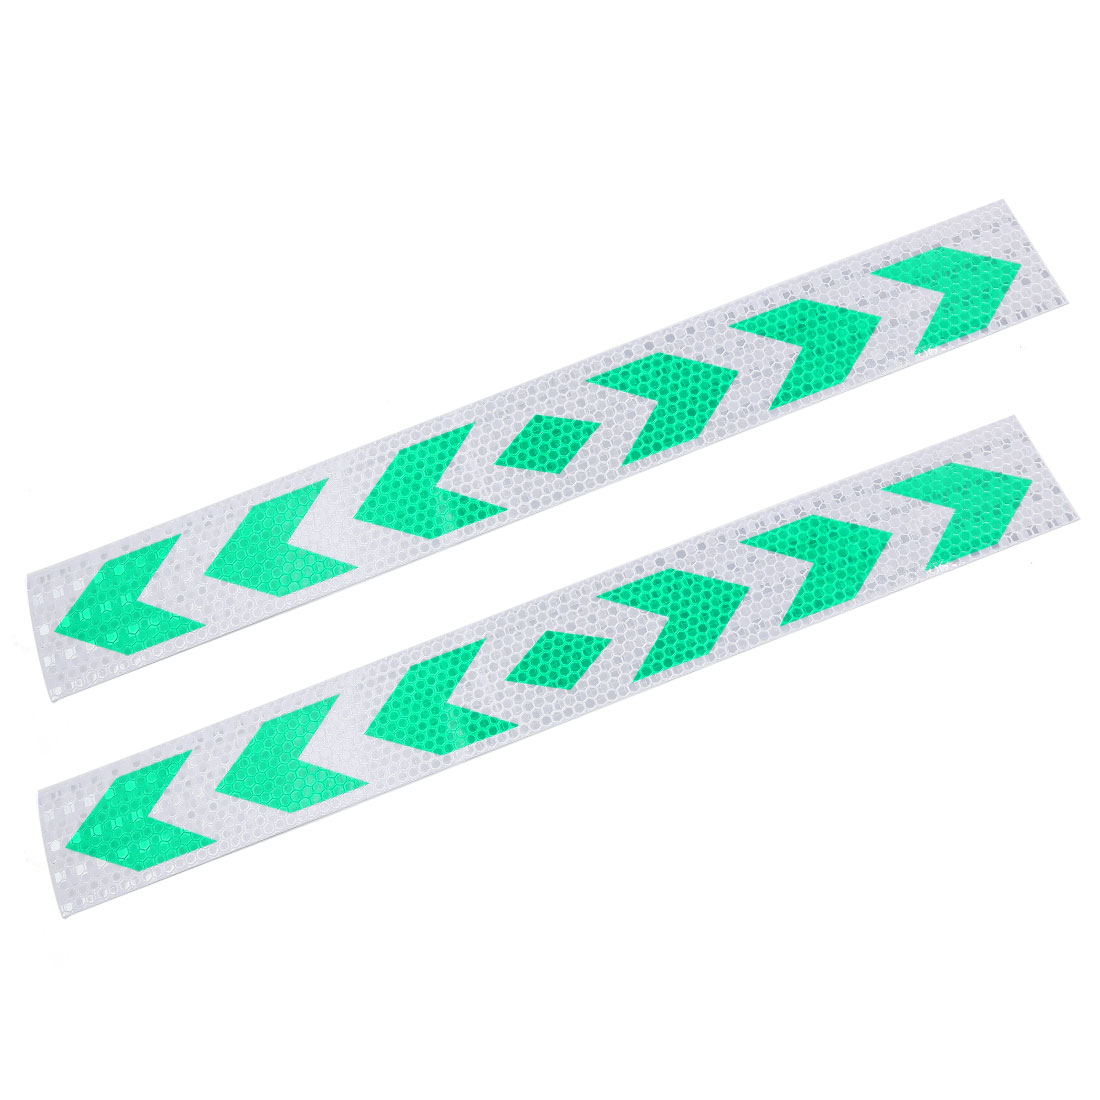 Green Arrows Print Reflective Conspicuity Decal Safety Warning Sticker 39cm 2pcs